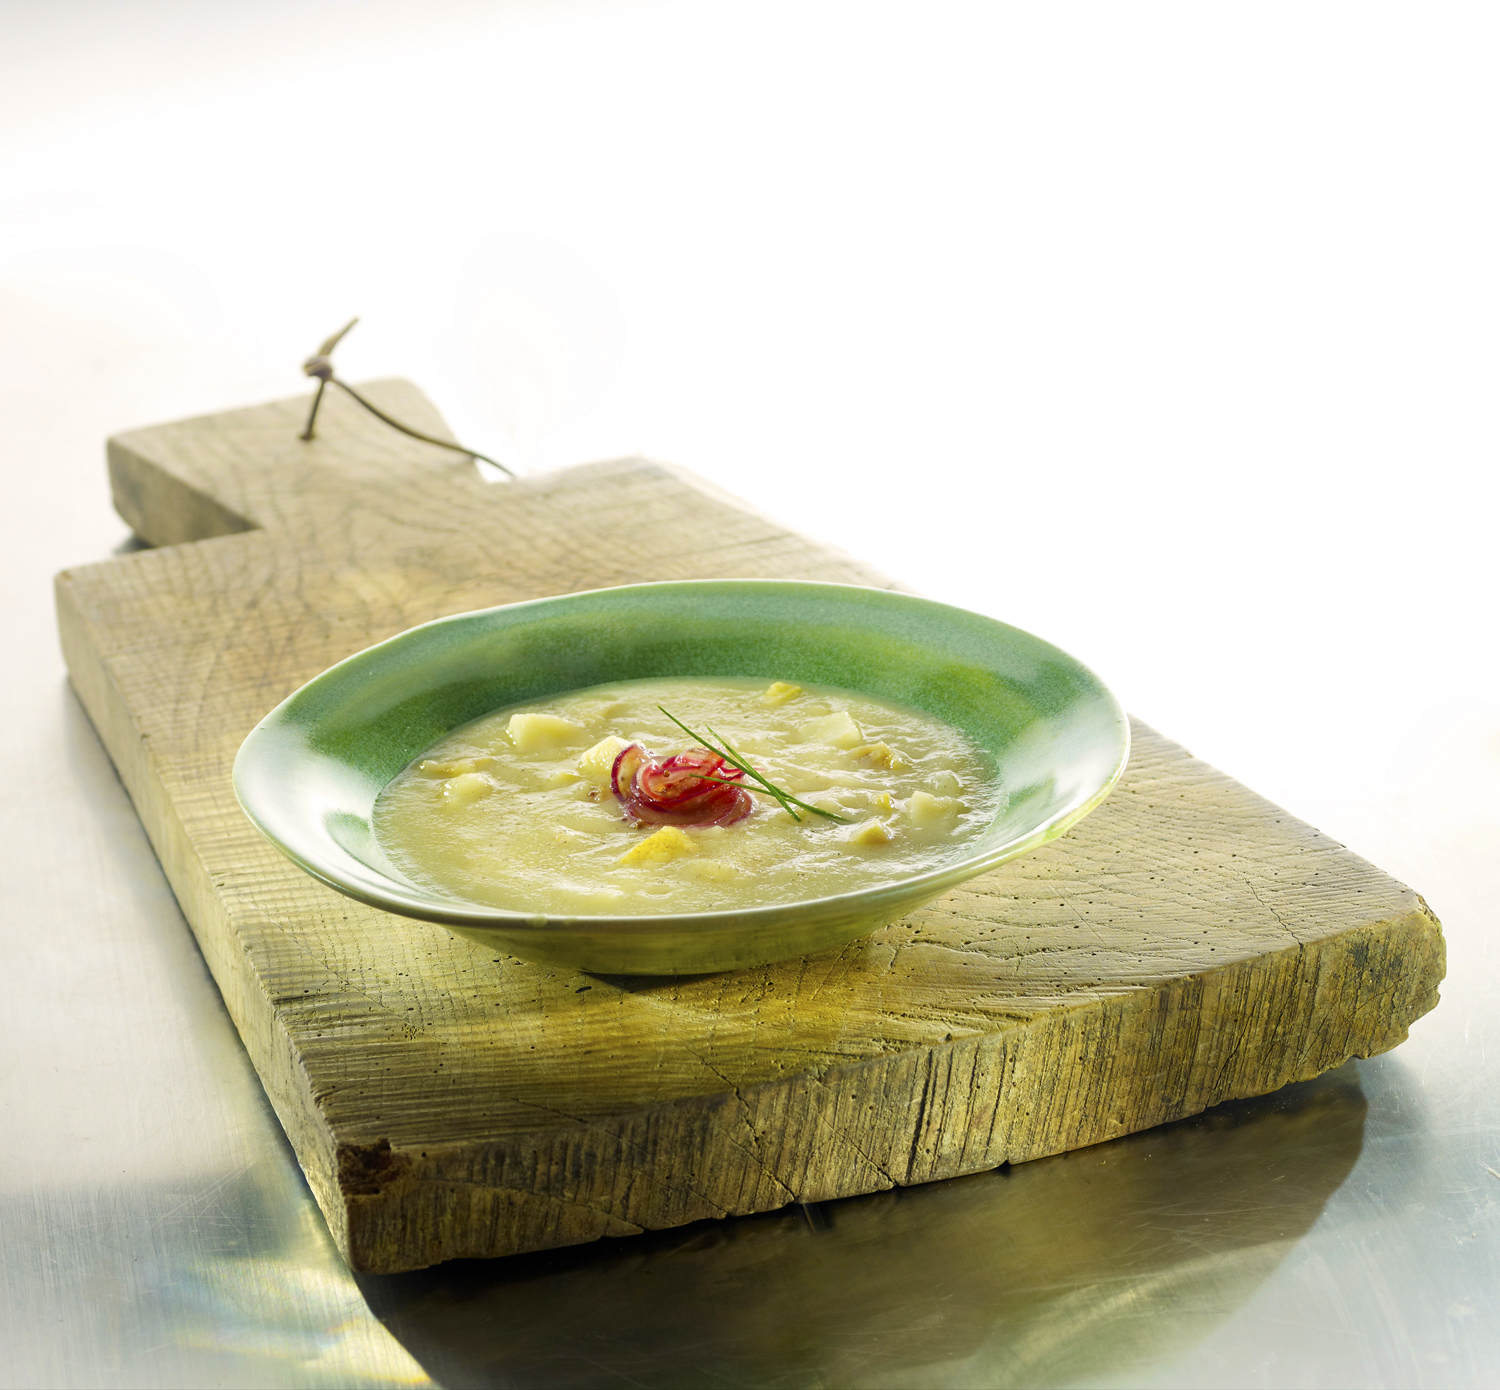 Celeriac and Pear Soup with Pickled Red Onions  Photo by David Bishop